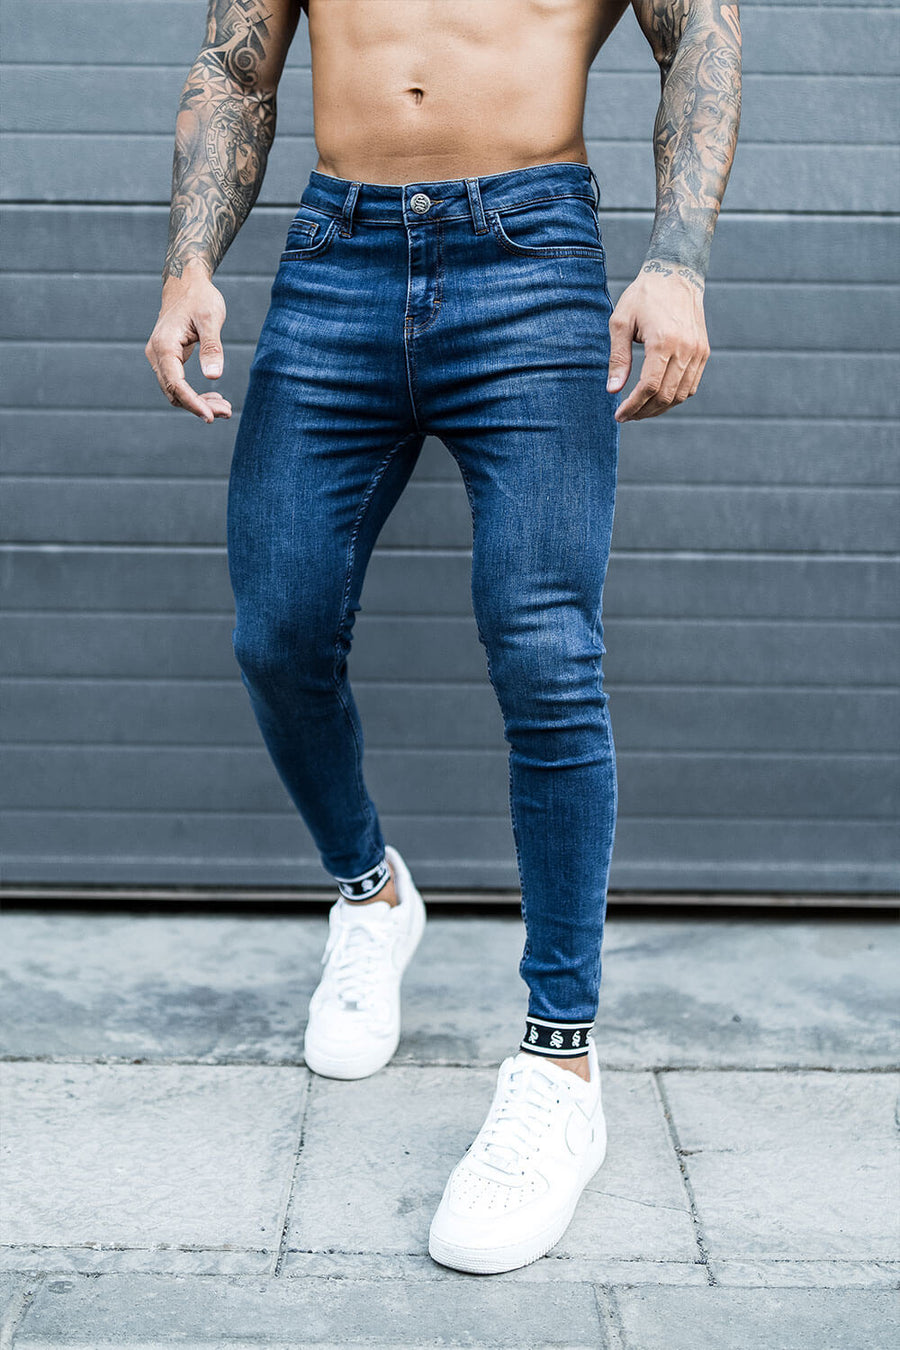 2ee2b1de8a7 Sinners Attire Jeans | Ripped Jeans | Ripped & Repaired Jeans ...